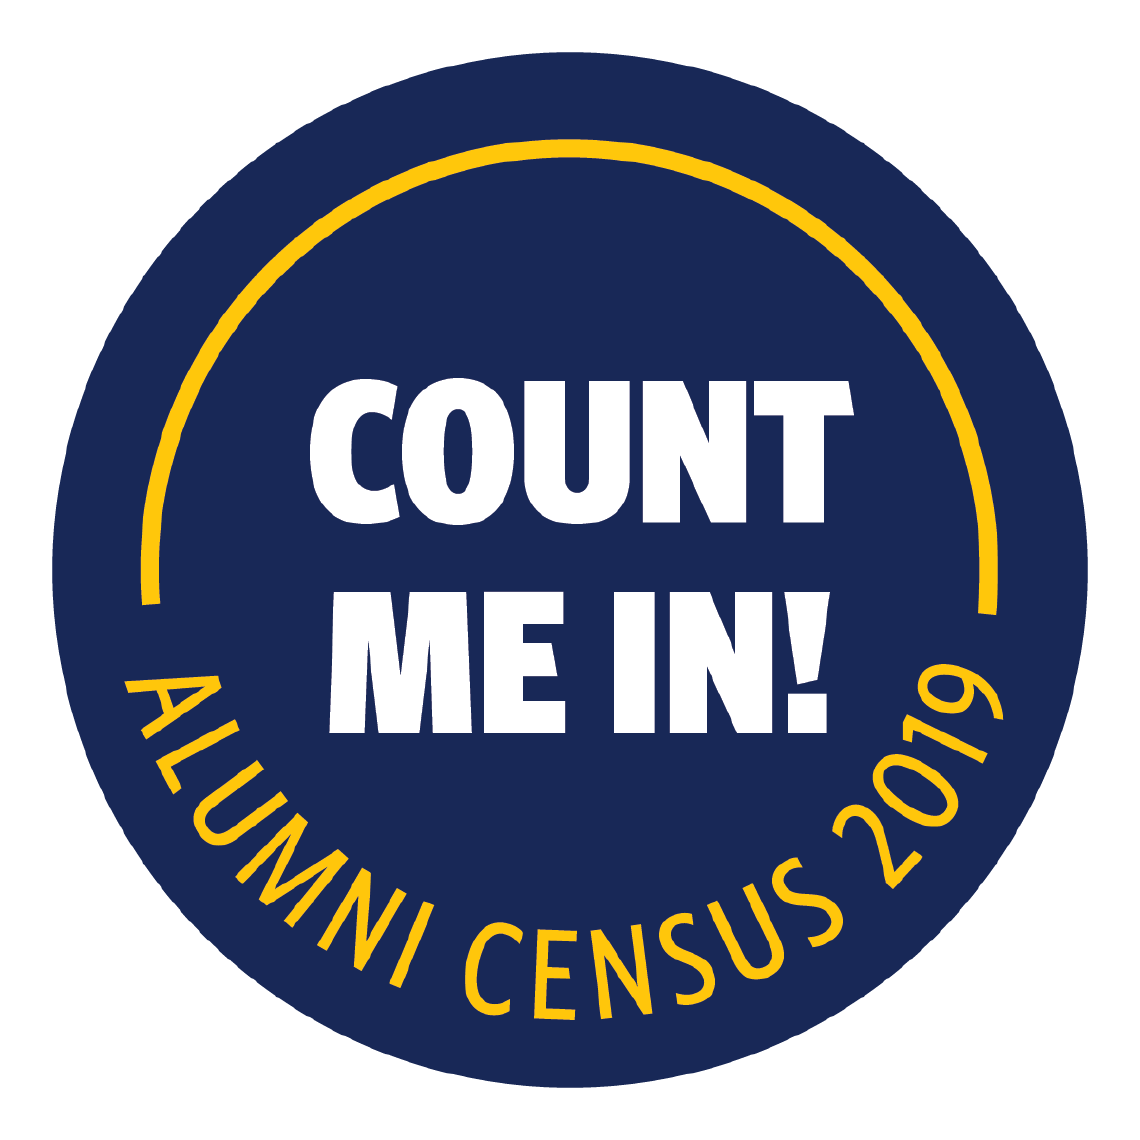 Count me in! Alumni census 2019